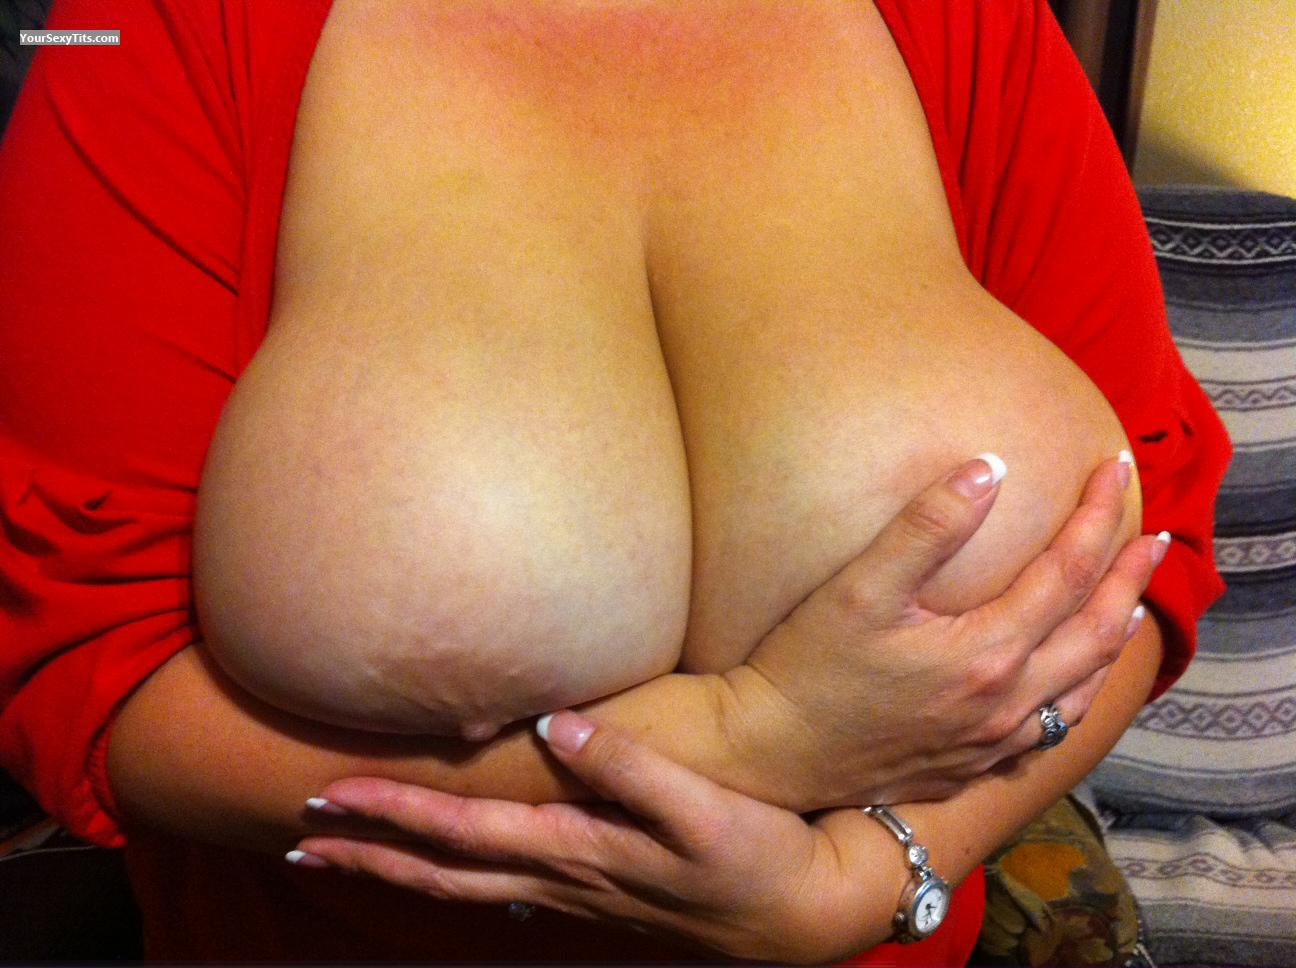 Tit Flash: Extremely Big Tits - Bountiful Bonnie from United States